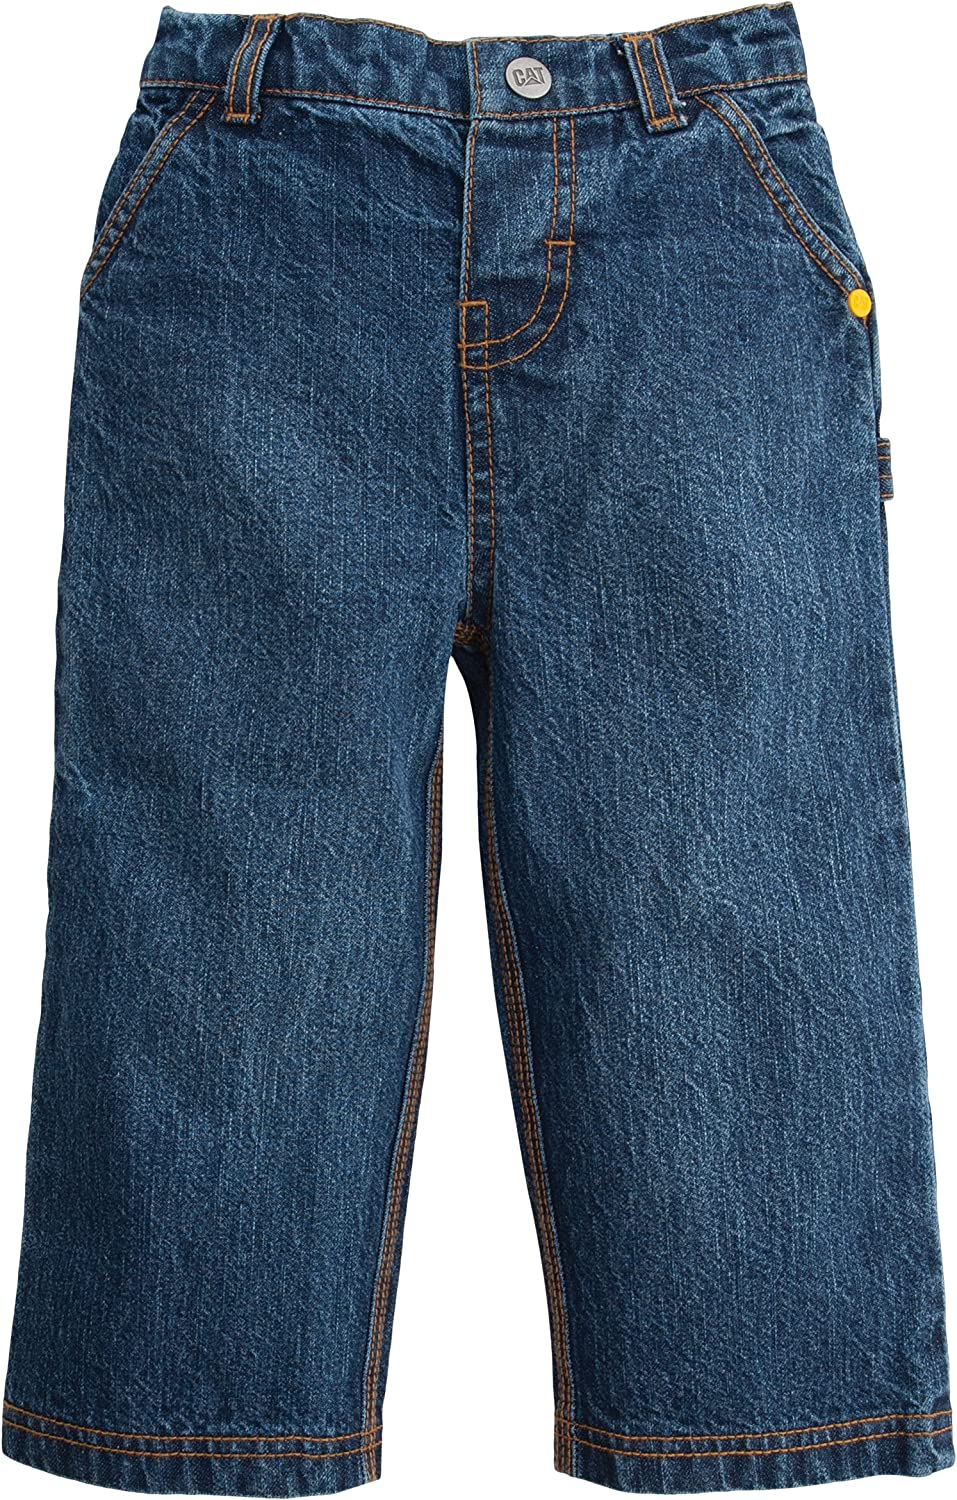 Caterpillar Baby Boys' Carpenter Jean, Denim, 12 Month: Clothing